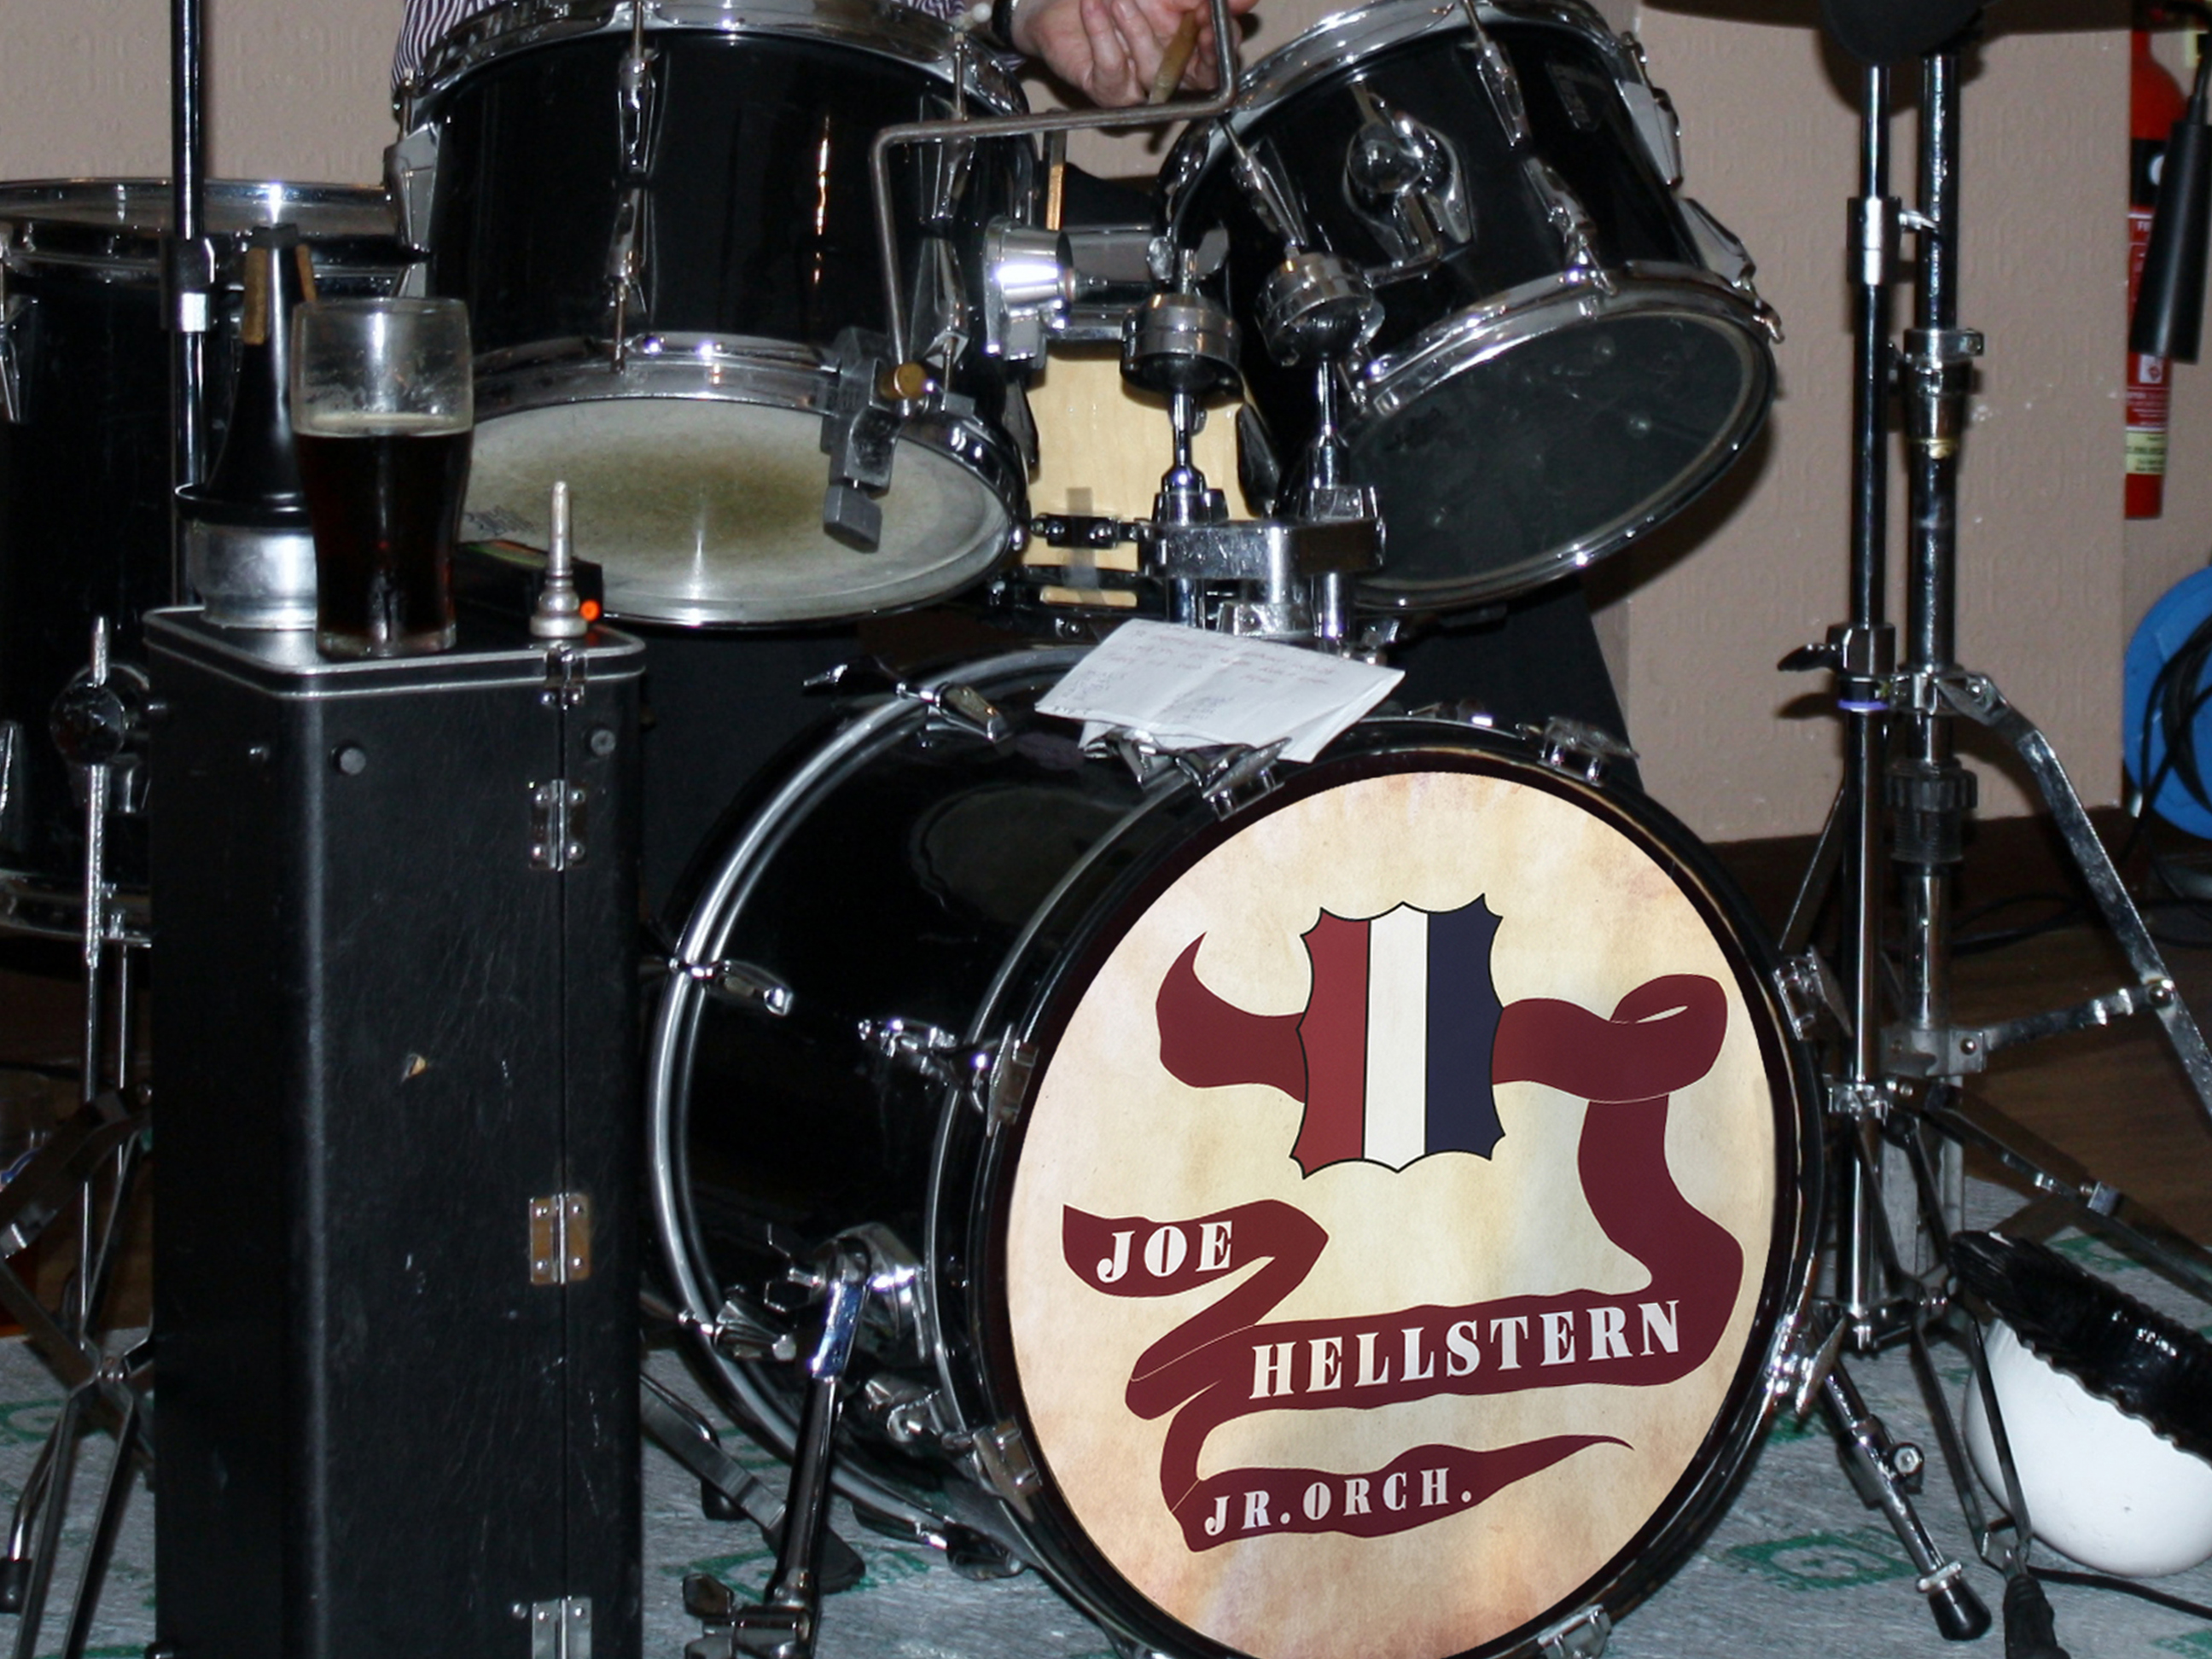 Joe Hellstern, removable drum decal, kick drum skin, full color drum decal, drum skin, sale, cheap price, die-cut, die cut vinyl decals, reusable static cling drum decal, music bands, local band